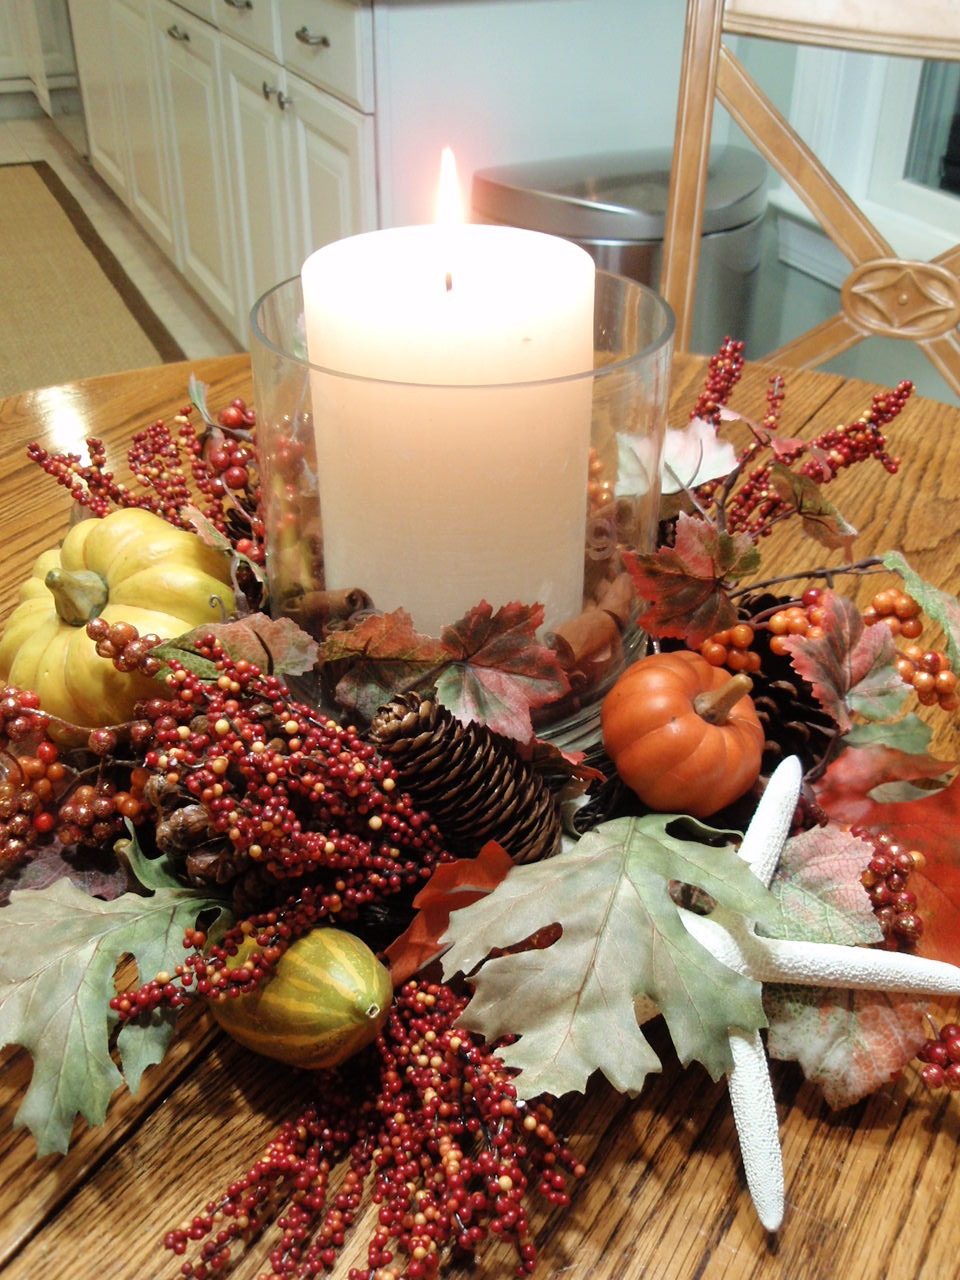 Modern vintage coastal happy thanksgiving welcome to my home i created the centerpiece with autumn garland pumpkins a candle and used chopped cinnamon sticks as a vase filler reviewsmspy